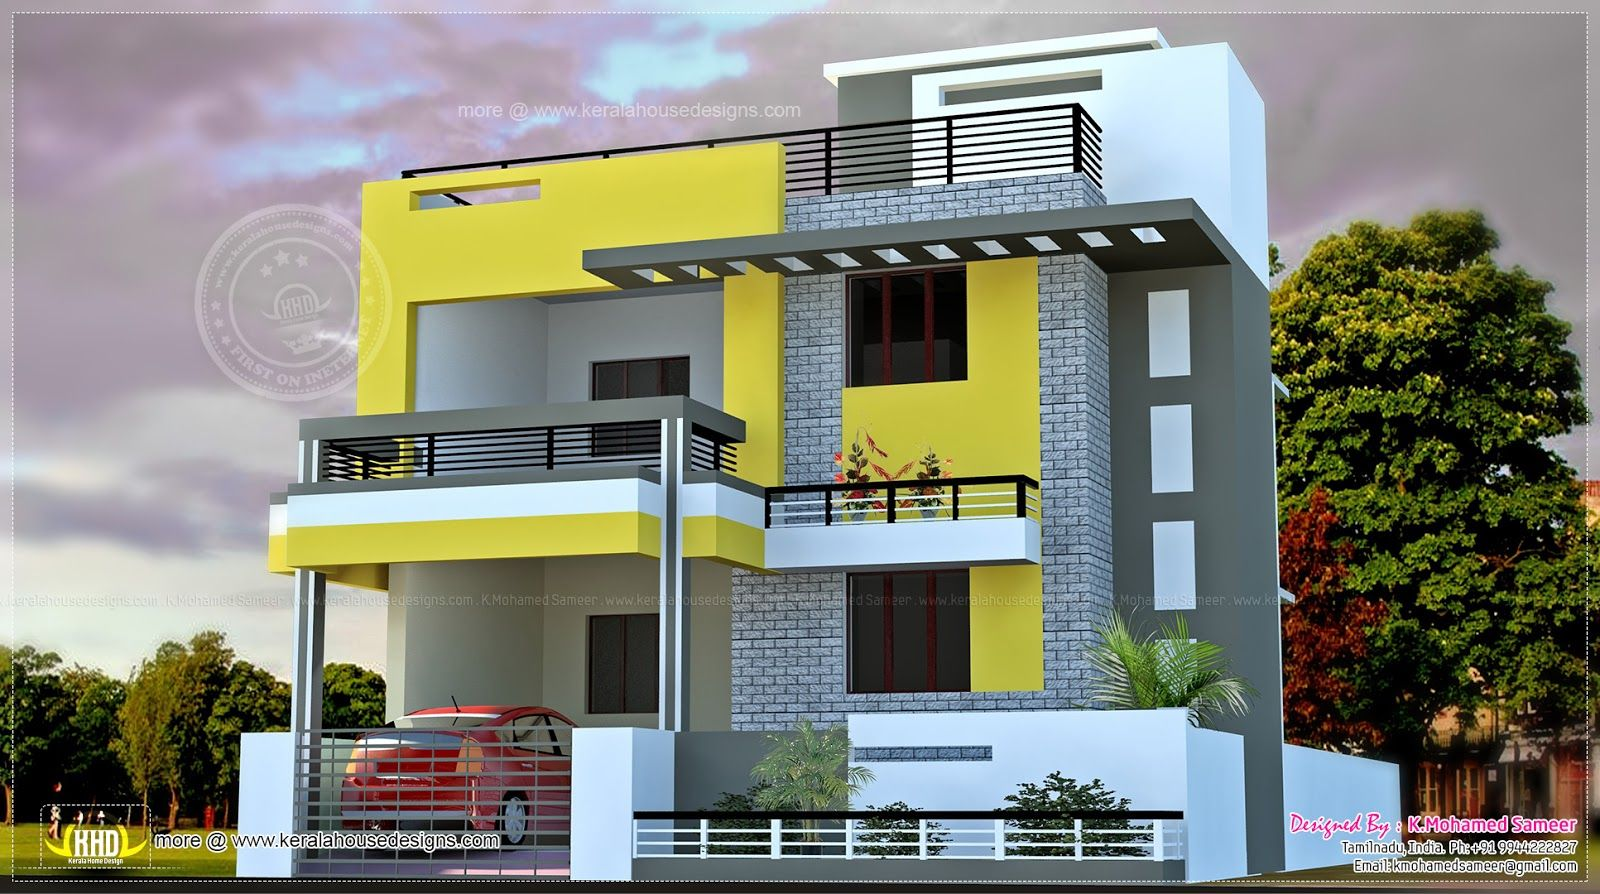 Elevations of residential buildings in indian photo Indian house structure design